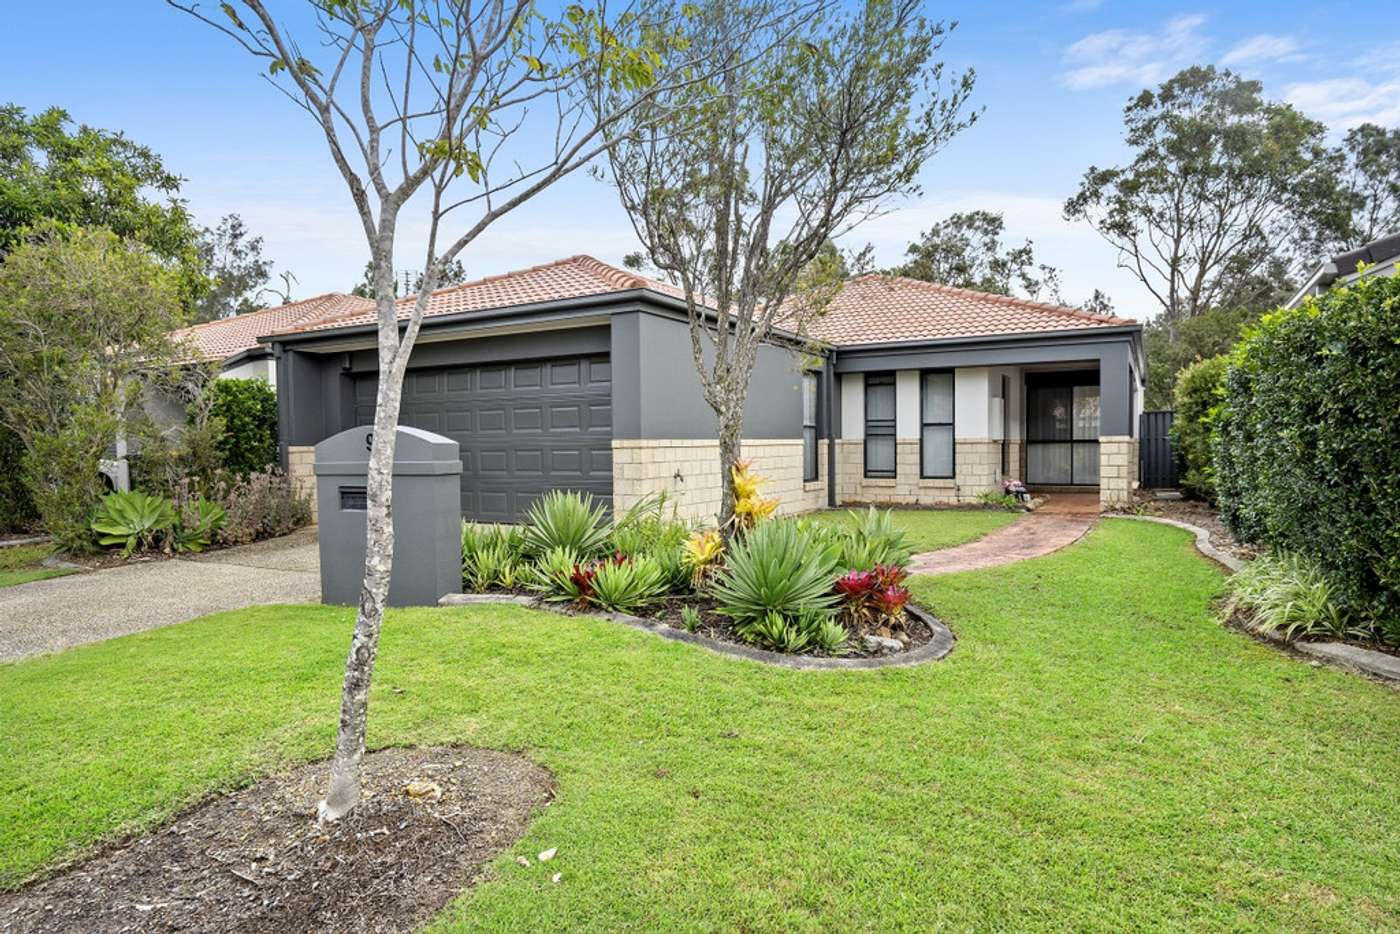 Main view of Homely house listing, 9 MELASTOMA WAY, Arundel QLD 4214